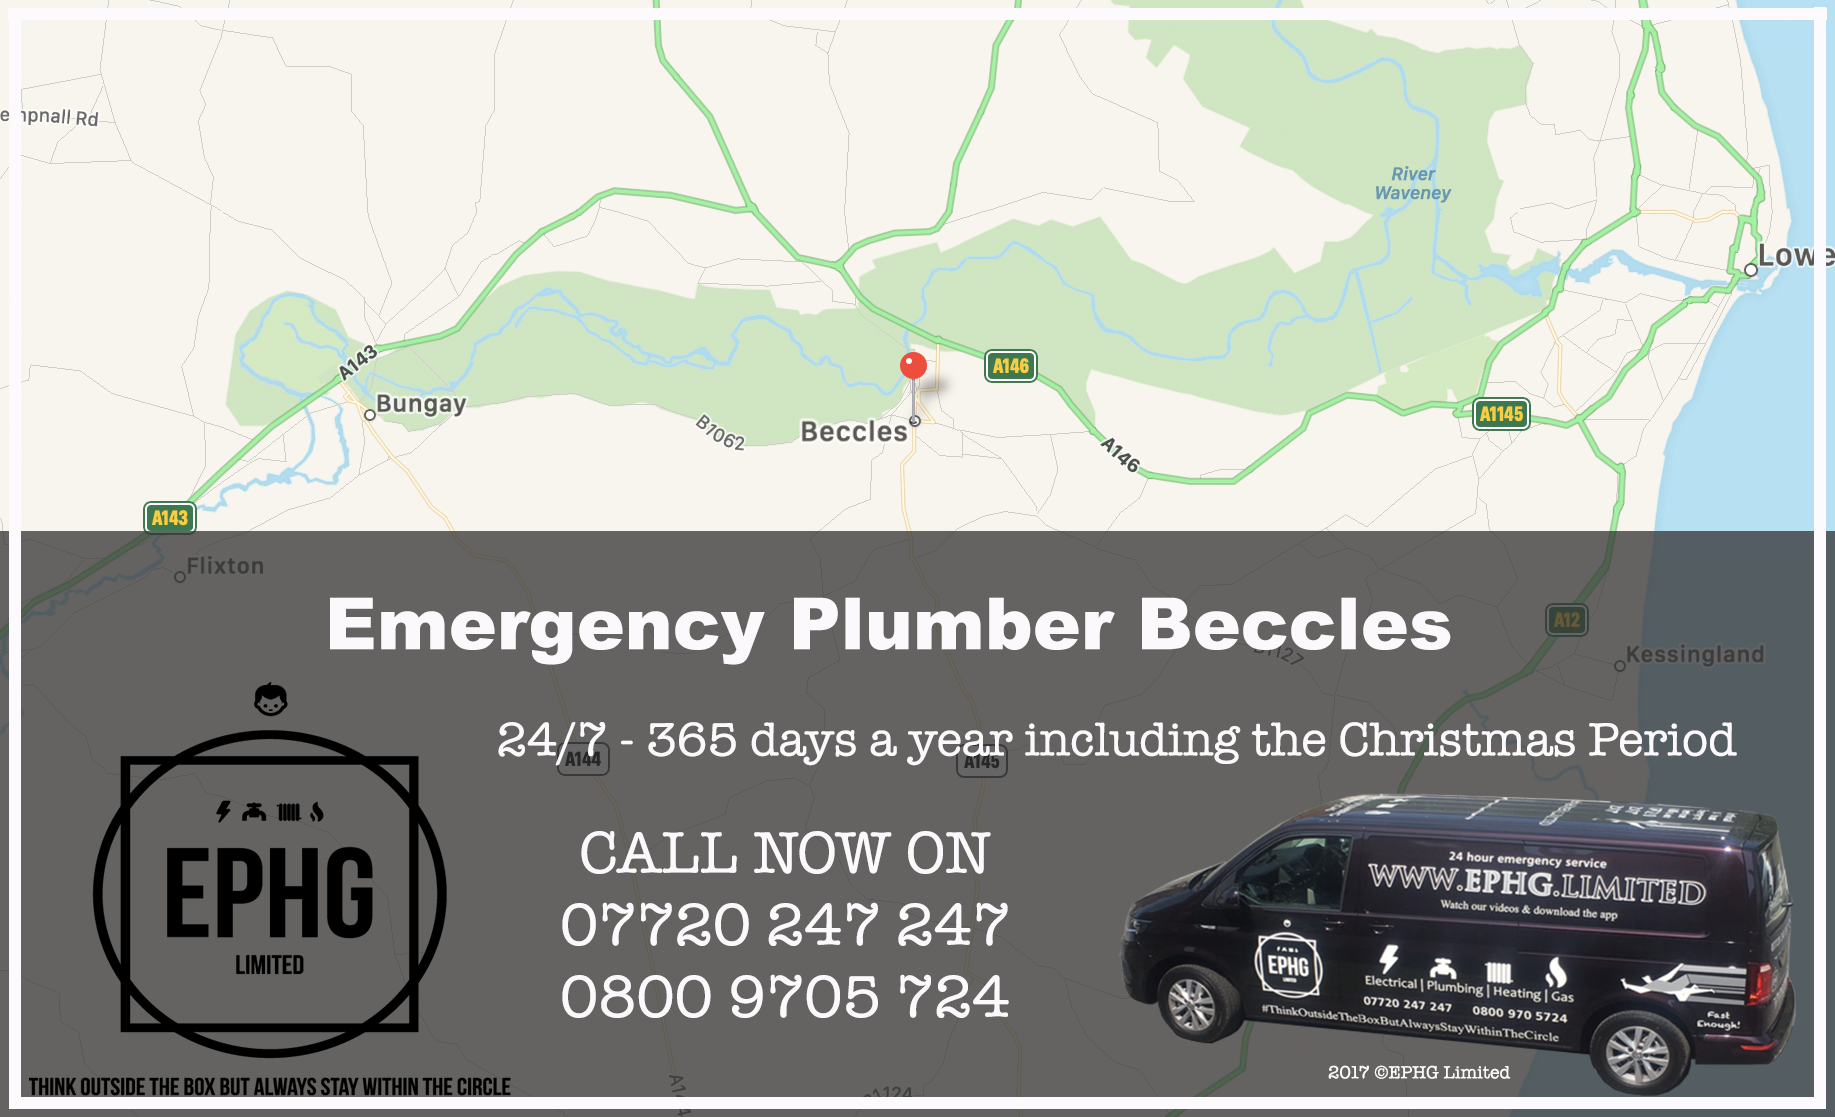 24 Hour Emergency Plumber Beccles